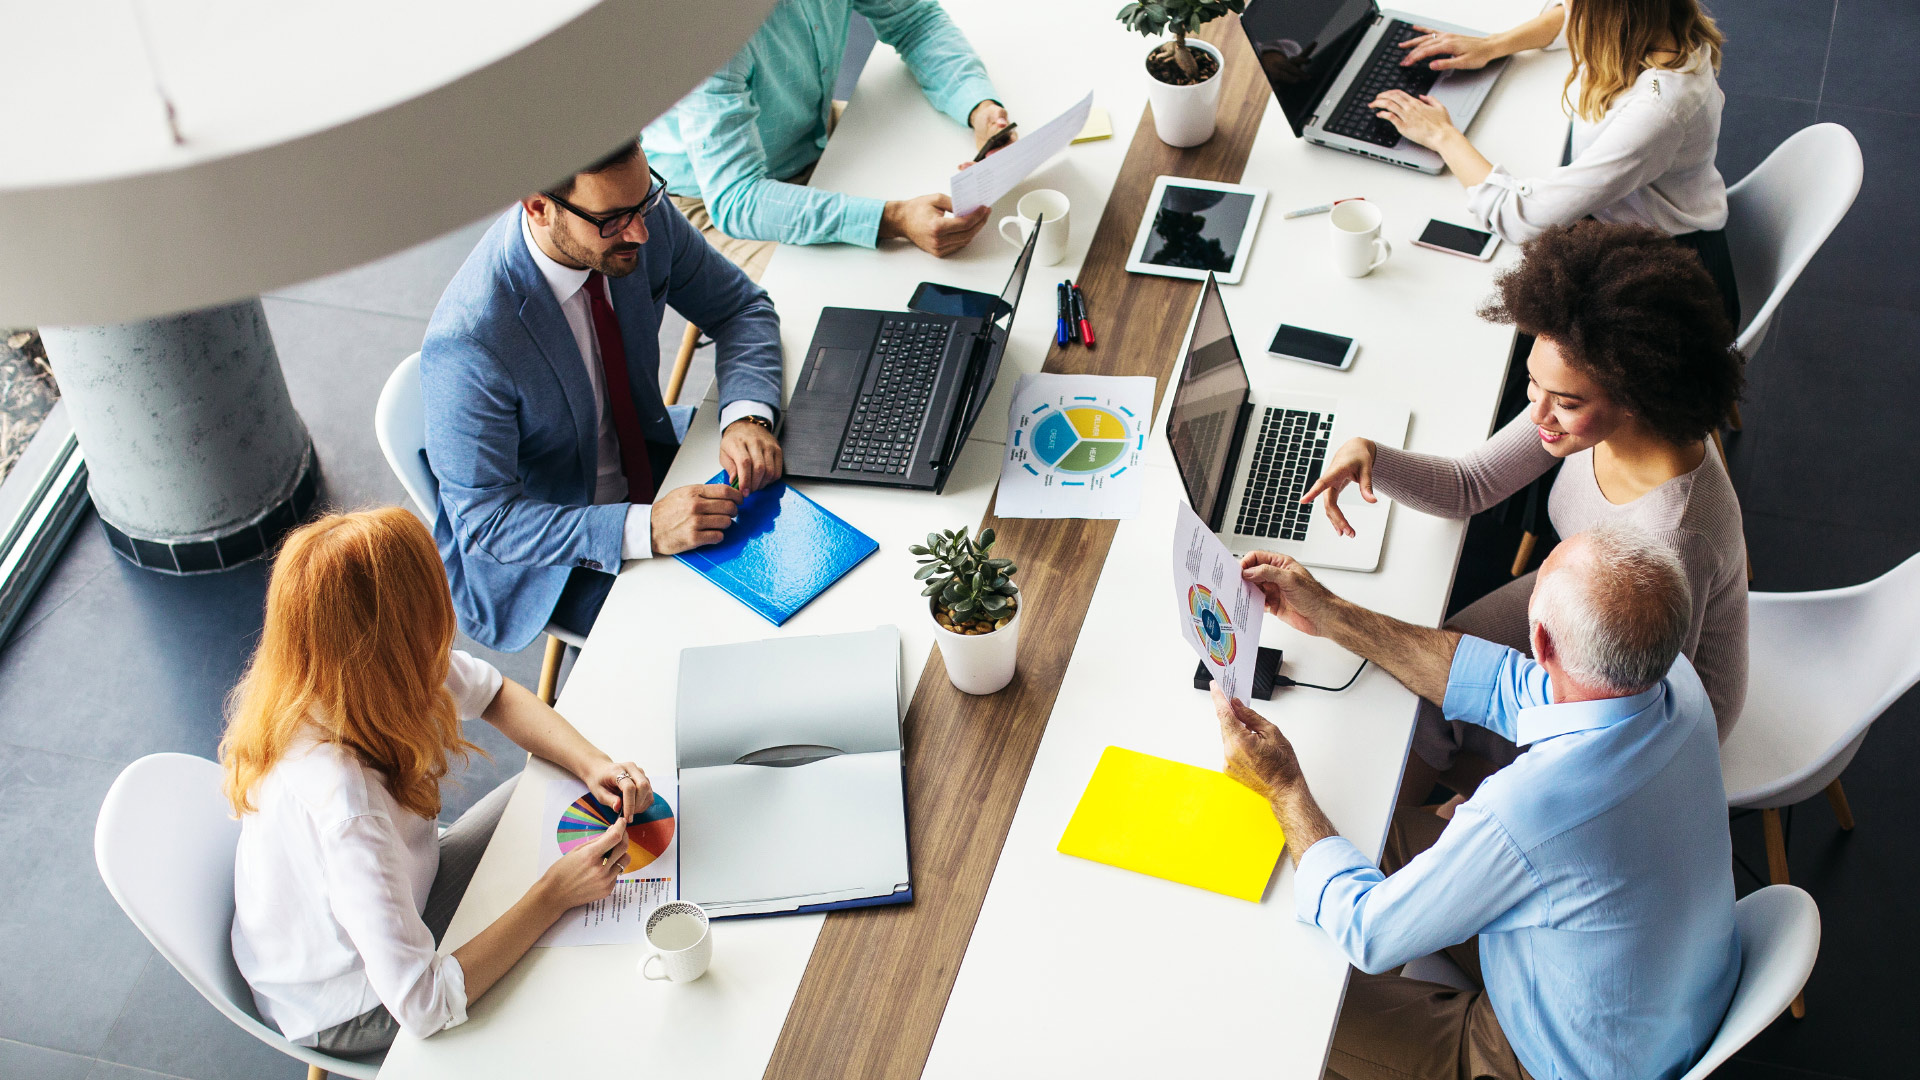 Best Ways to Make Your Online Workplace Training More Engaging in 2019